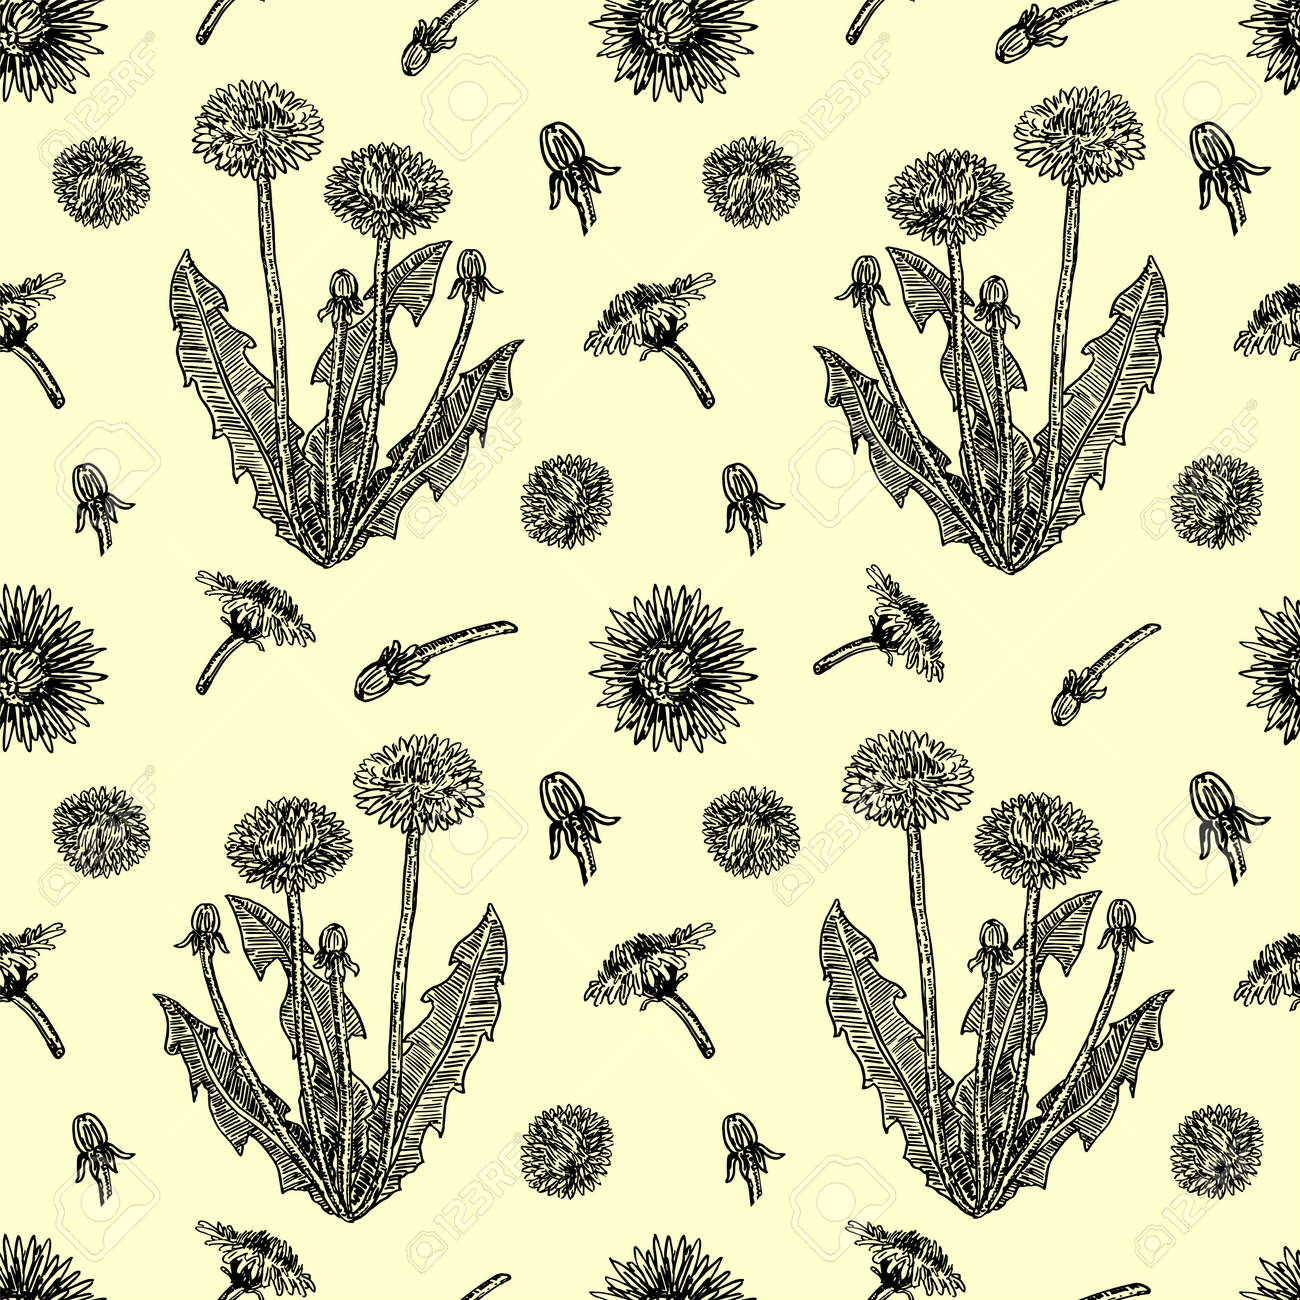 Graphic hand drawn dandelions. Cover page template with dandelions based on seamless pattern. Vector sketch seamless pattern. For wallpaper, pattern fills, web page background, surface textures - 169743685